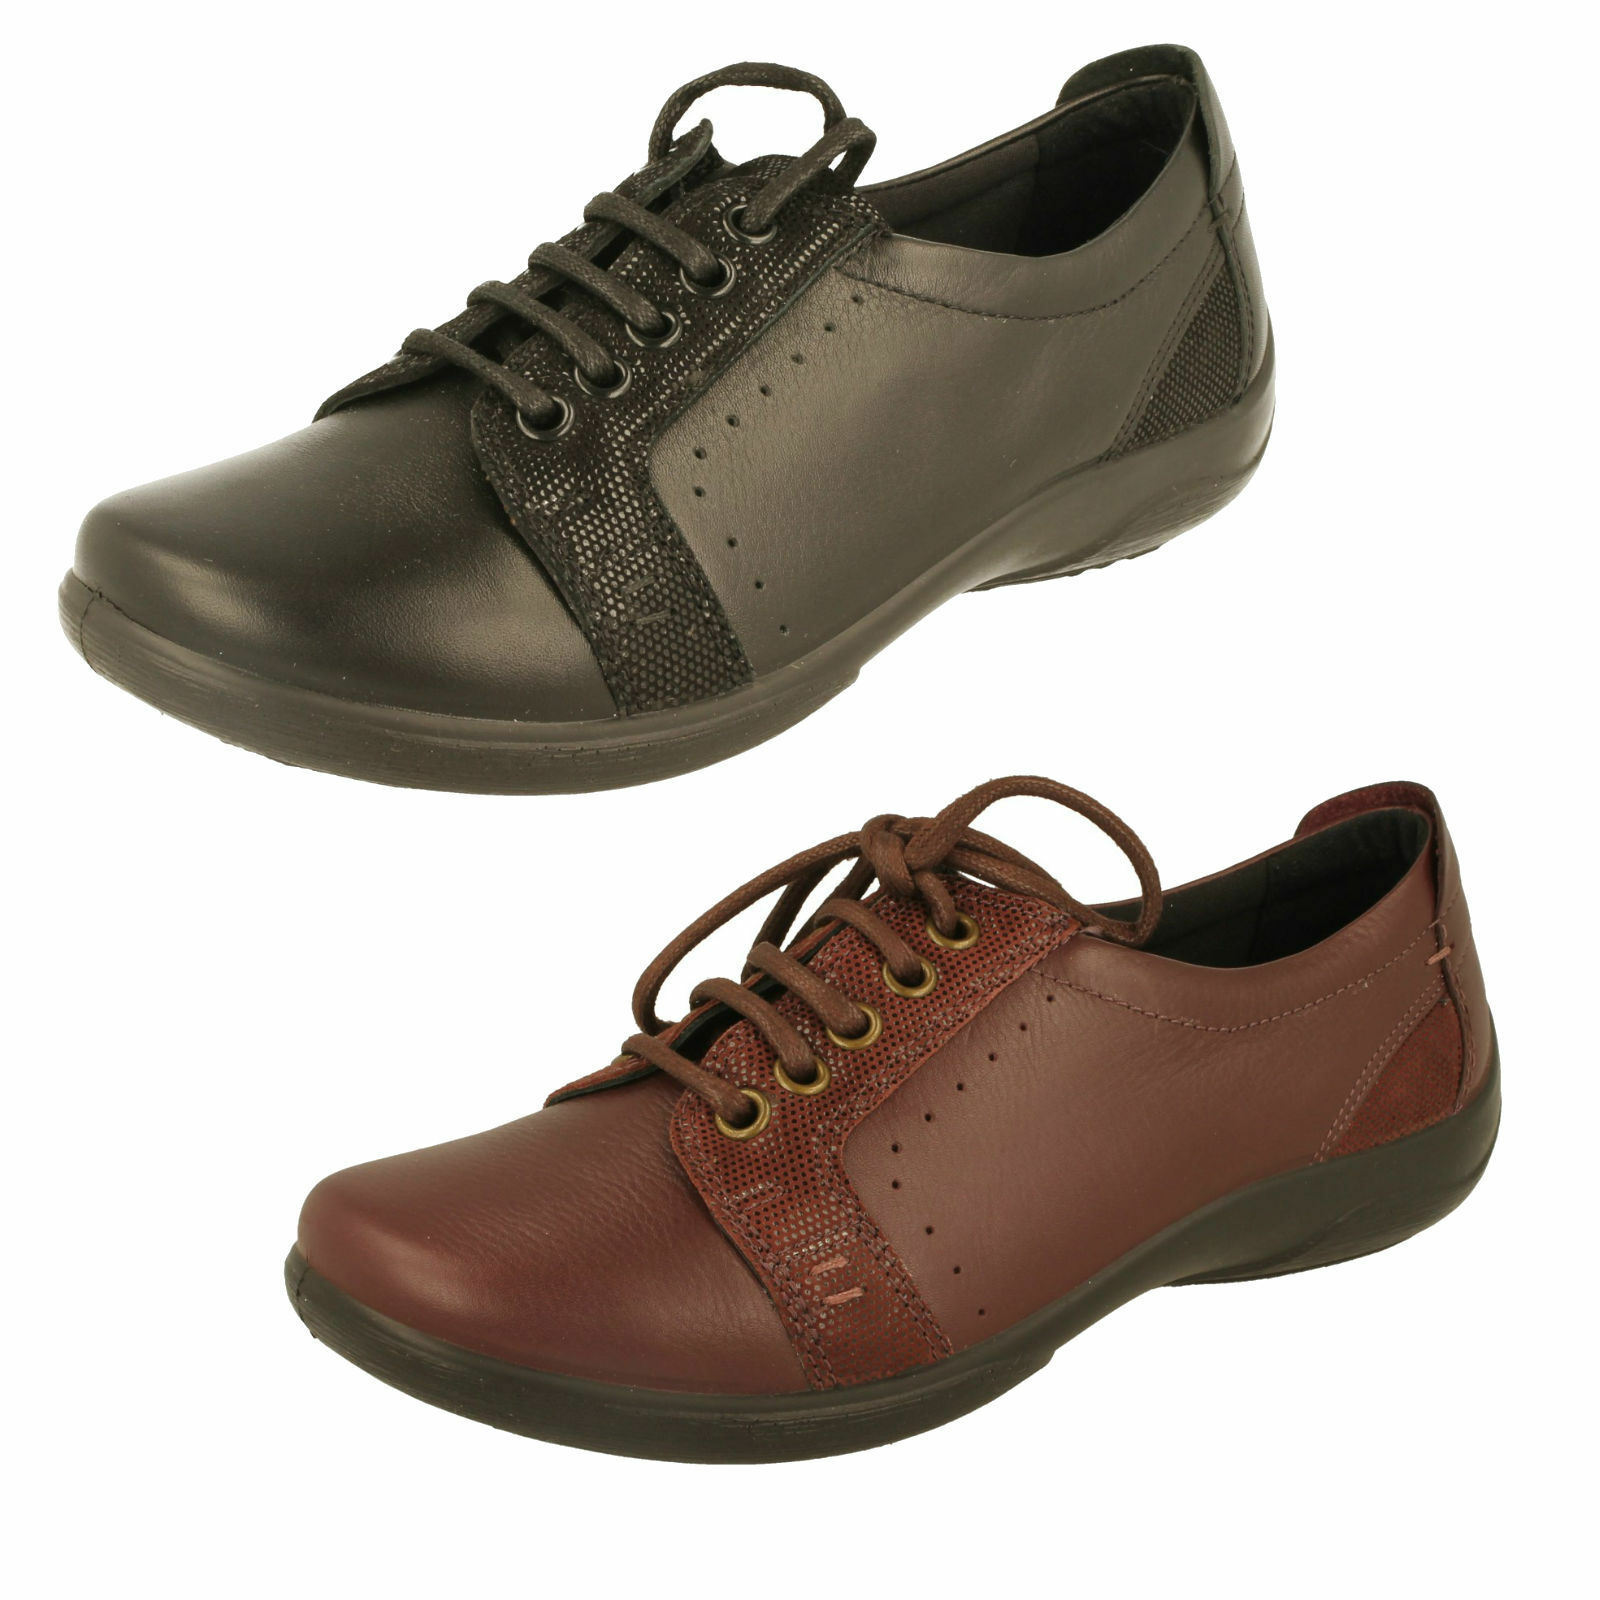 Mujer Padders Cordones Muy Muy Muy Ancho Dual Fit Zapatos - SONNET  en stock